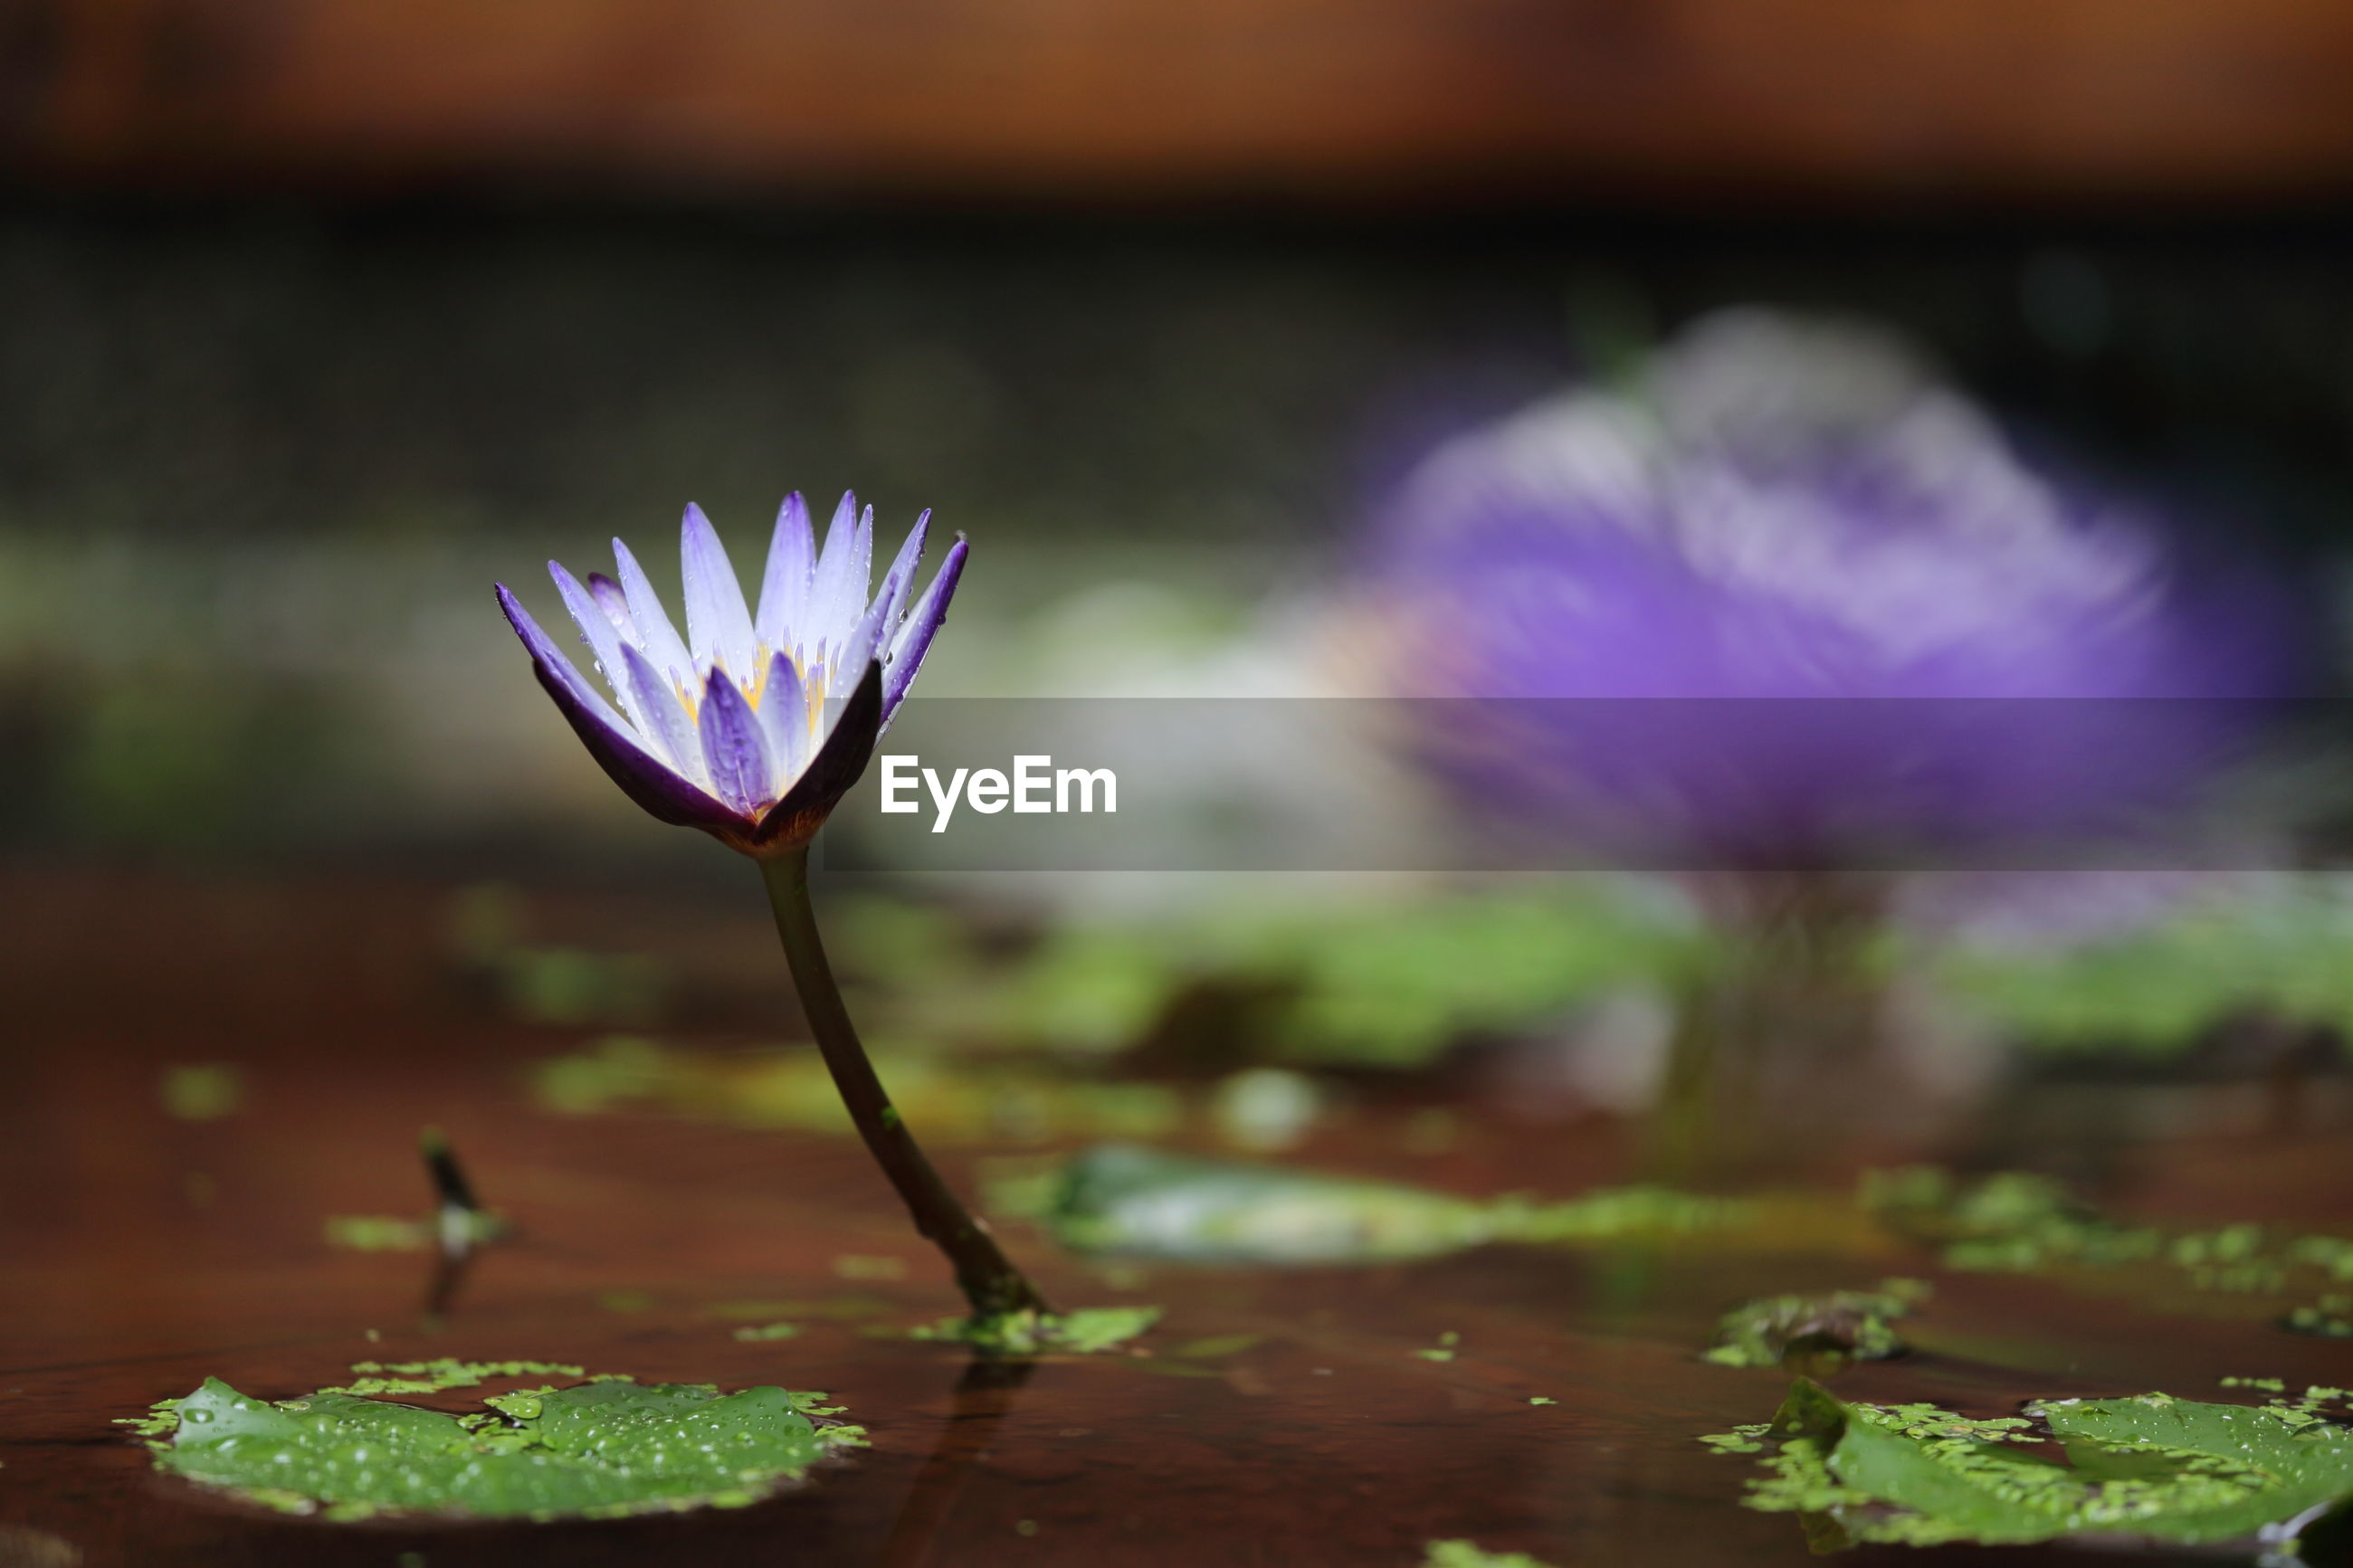 CLOSE-UP OF PURPLE WATER LILY FLOWERS GROWING ON FIELD